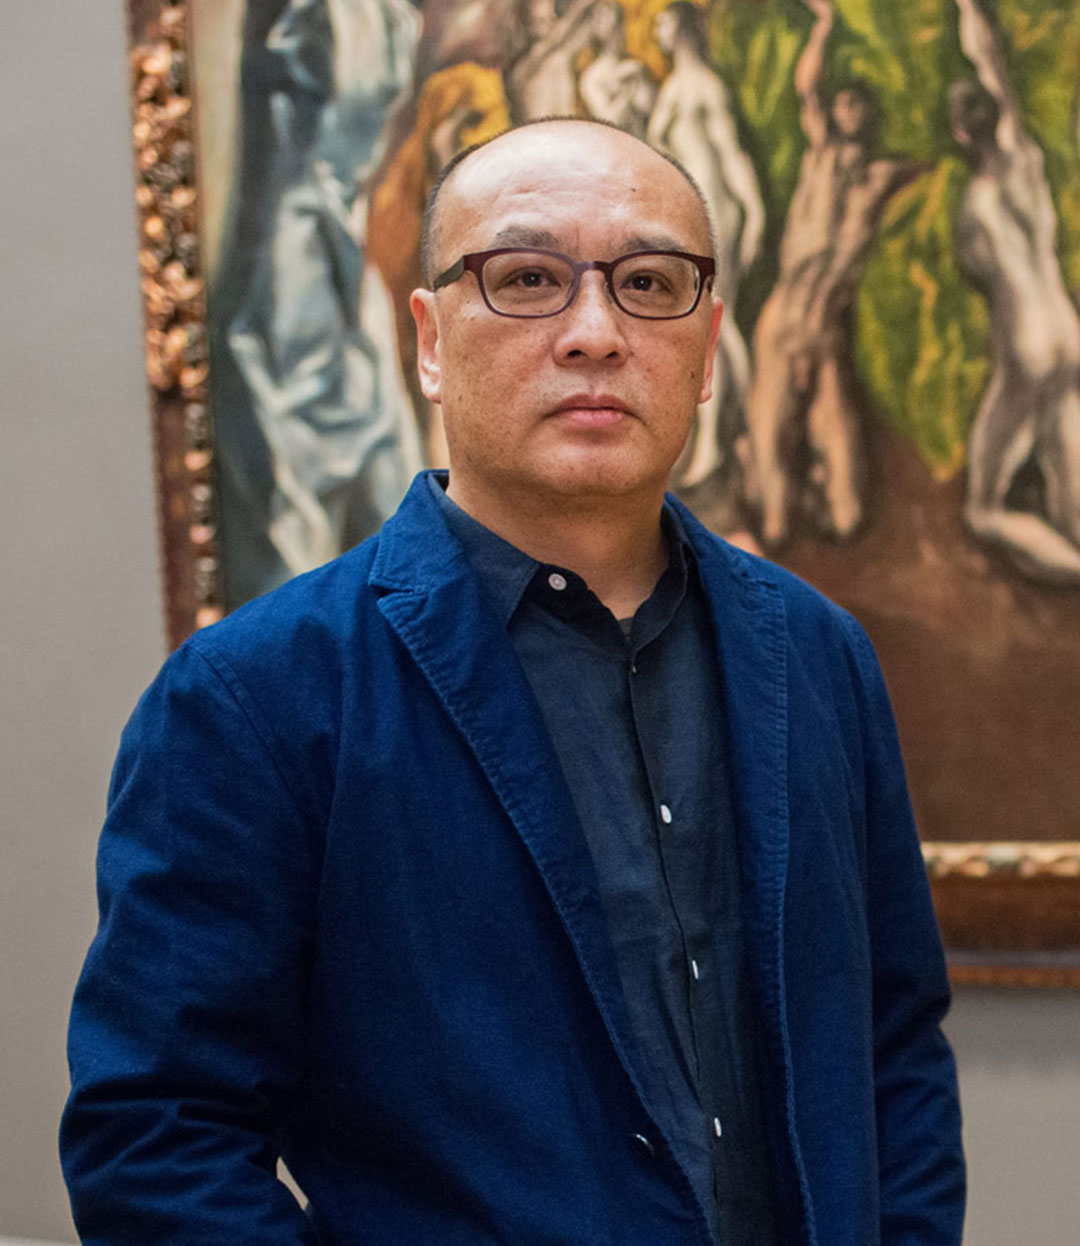 Zhang Xiaogang beside The Vision of Saint John (c. 1609–14) by El Greco, as featured in The Artist Project